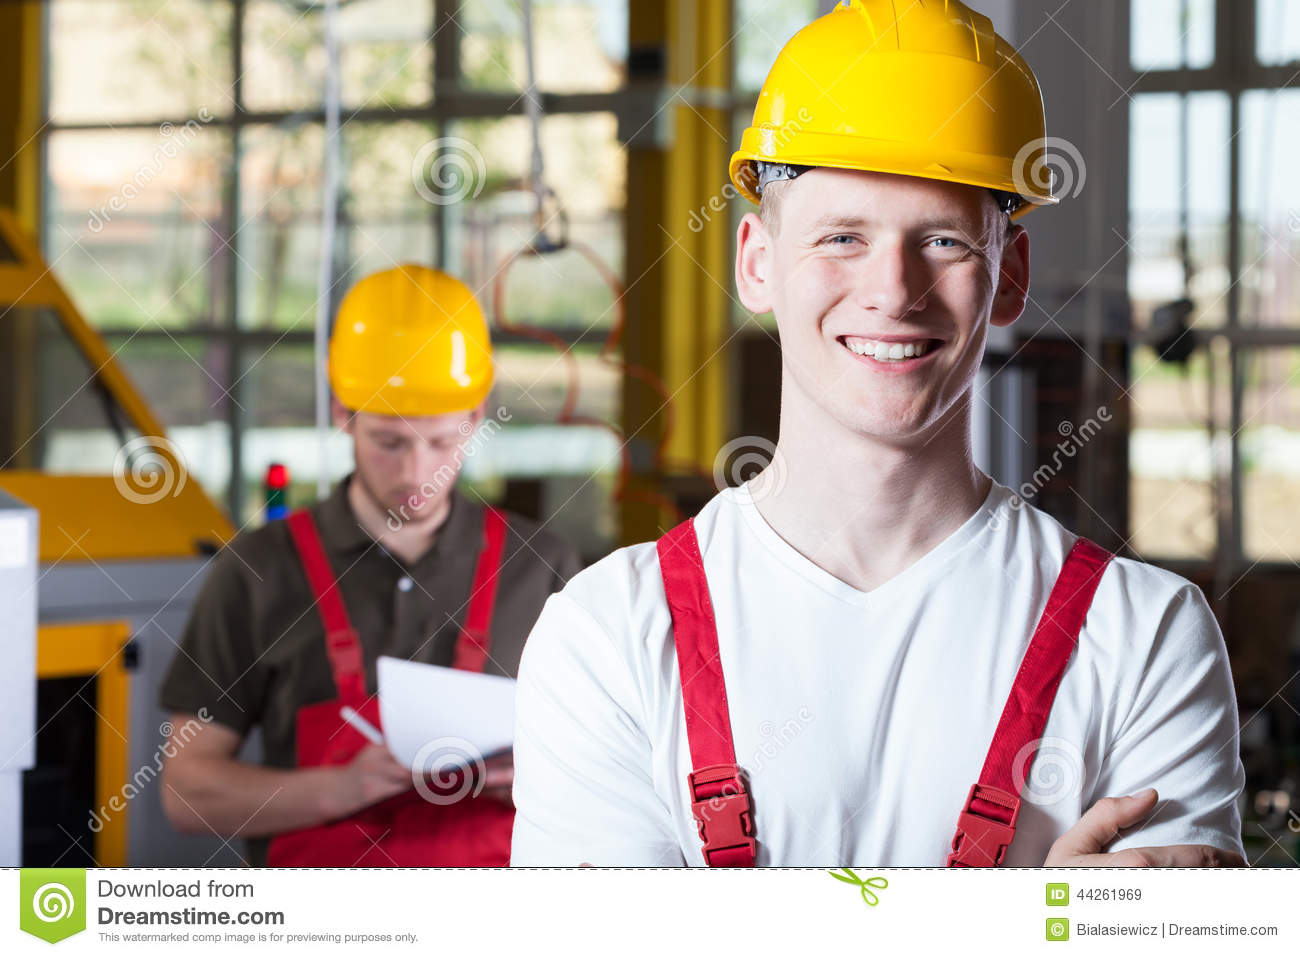 Blue-collar worker working in fabric